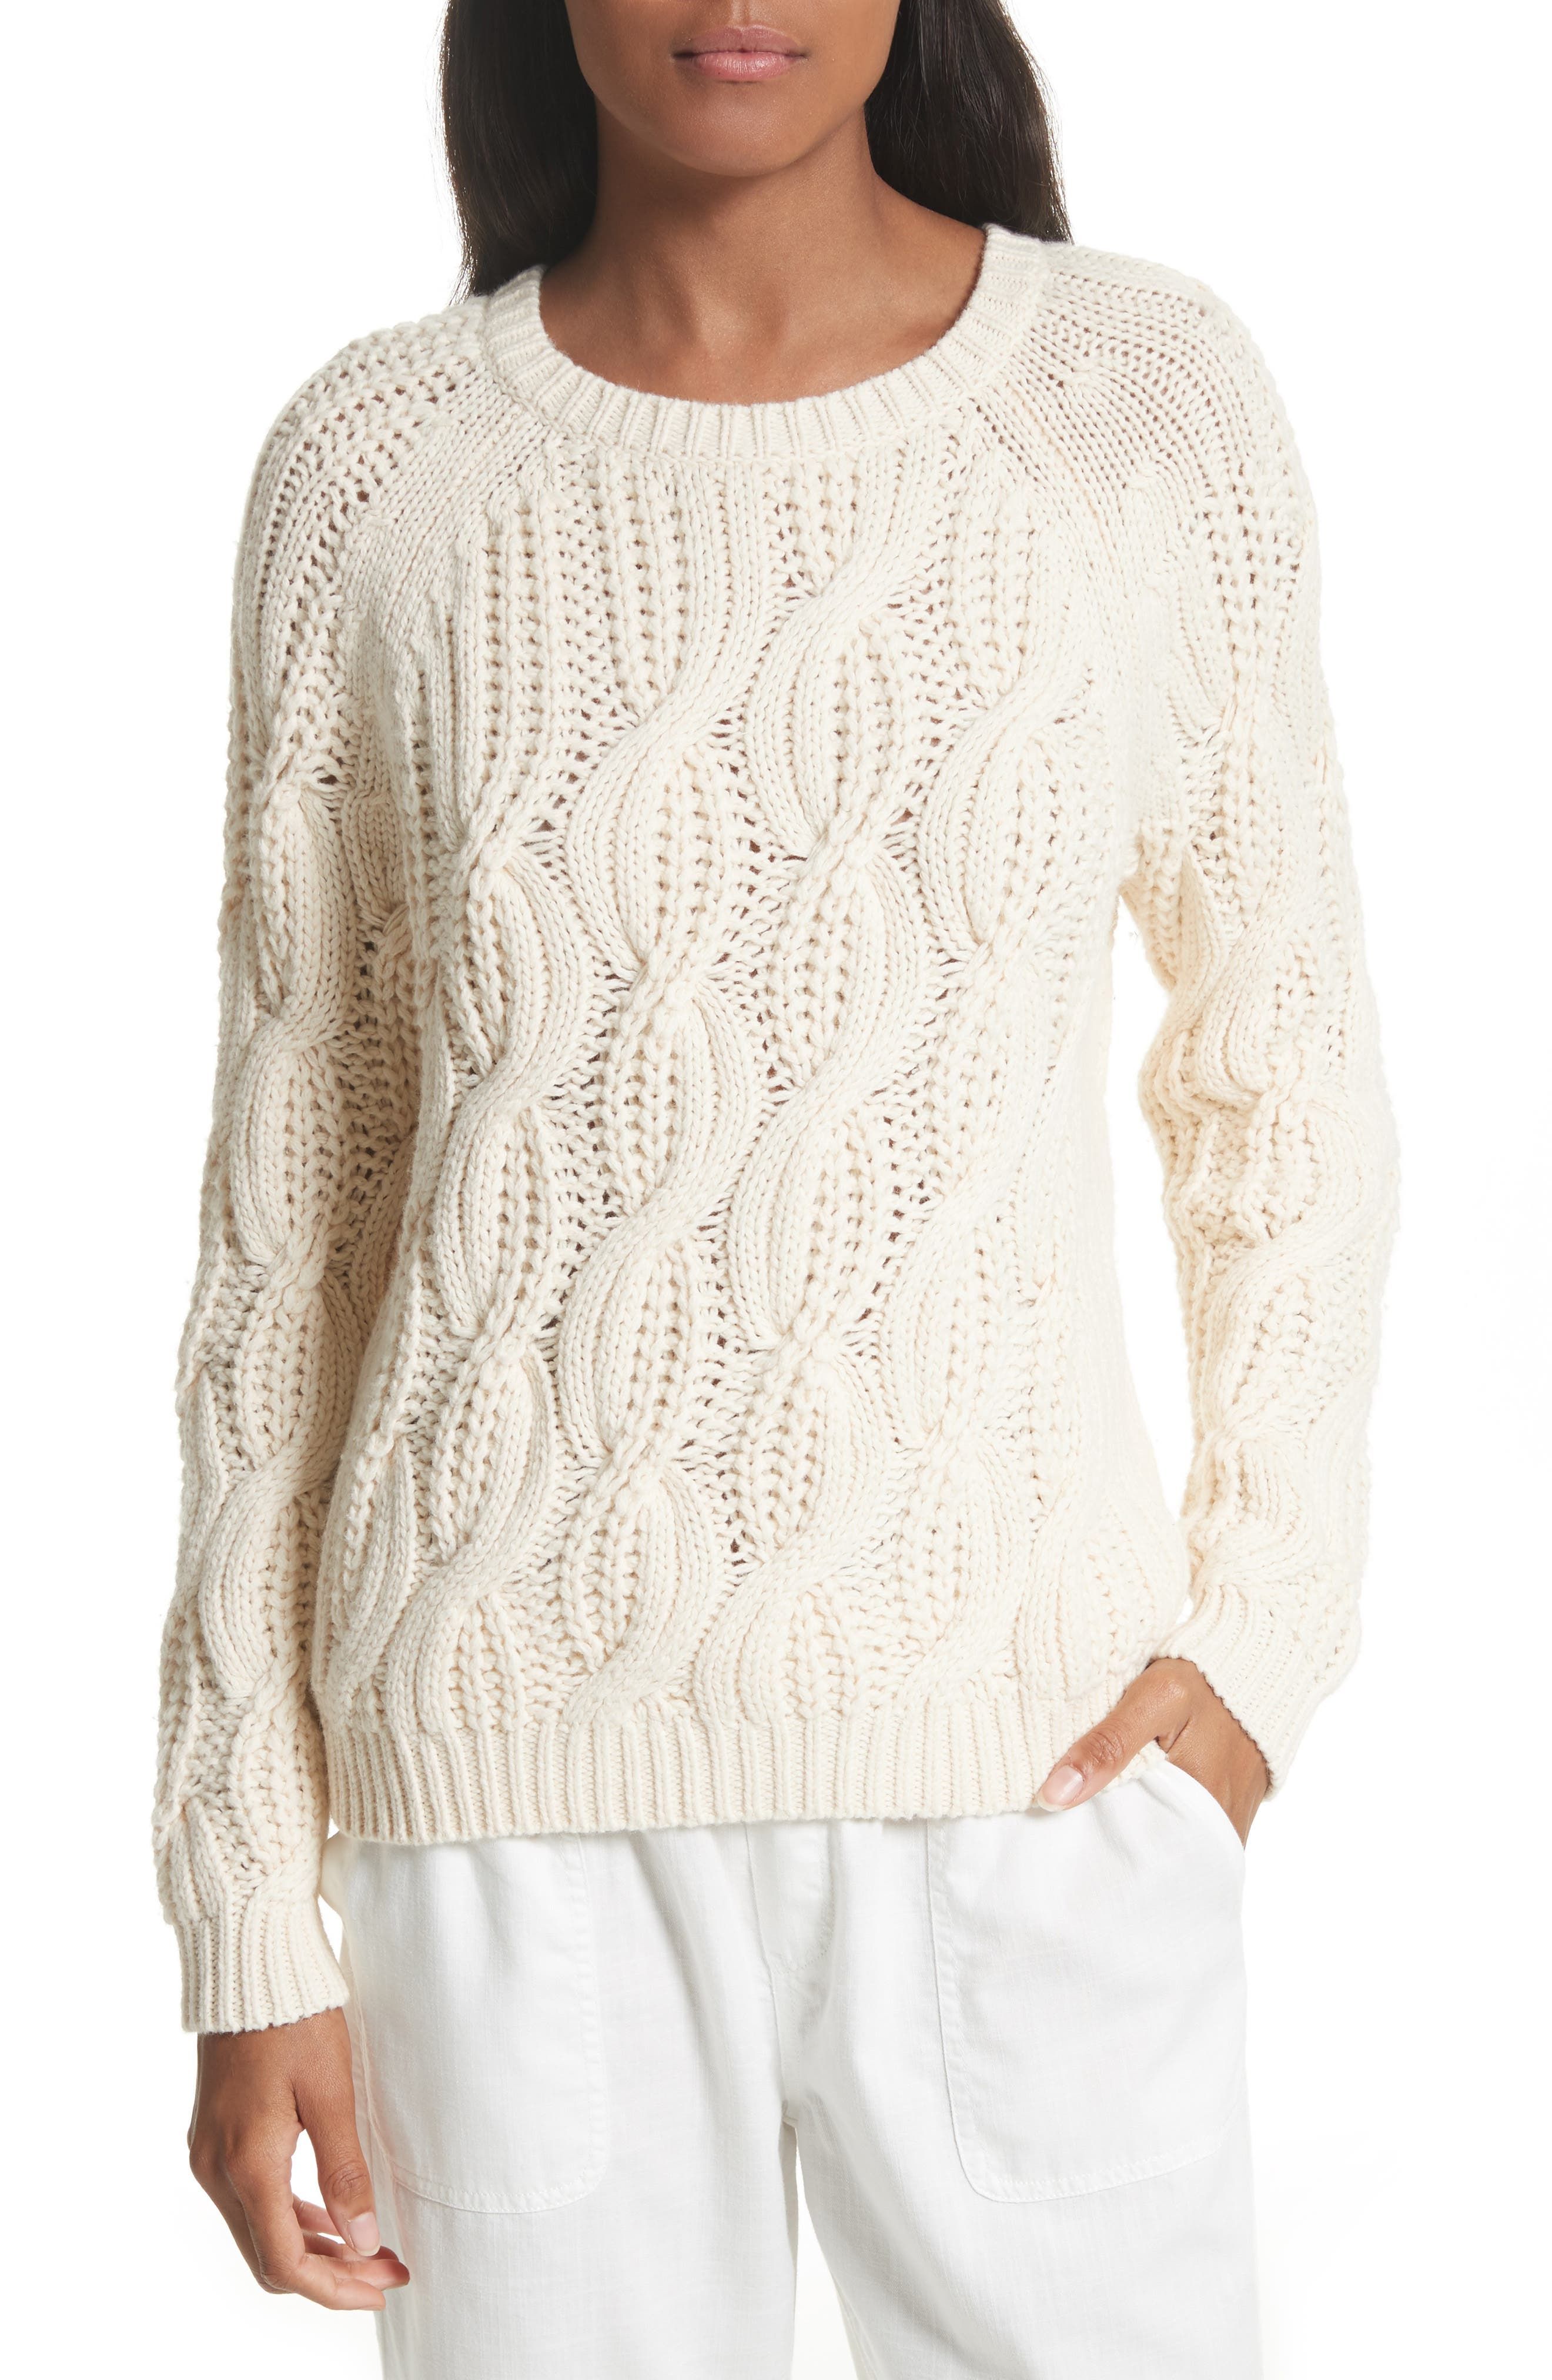 Soft Joie Candessa Cable Knit Sweater